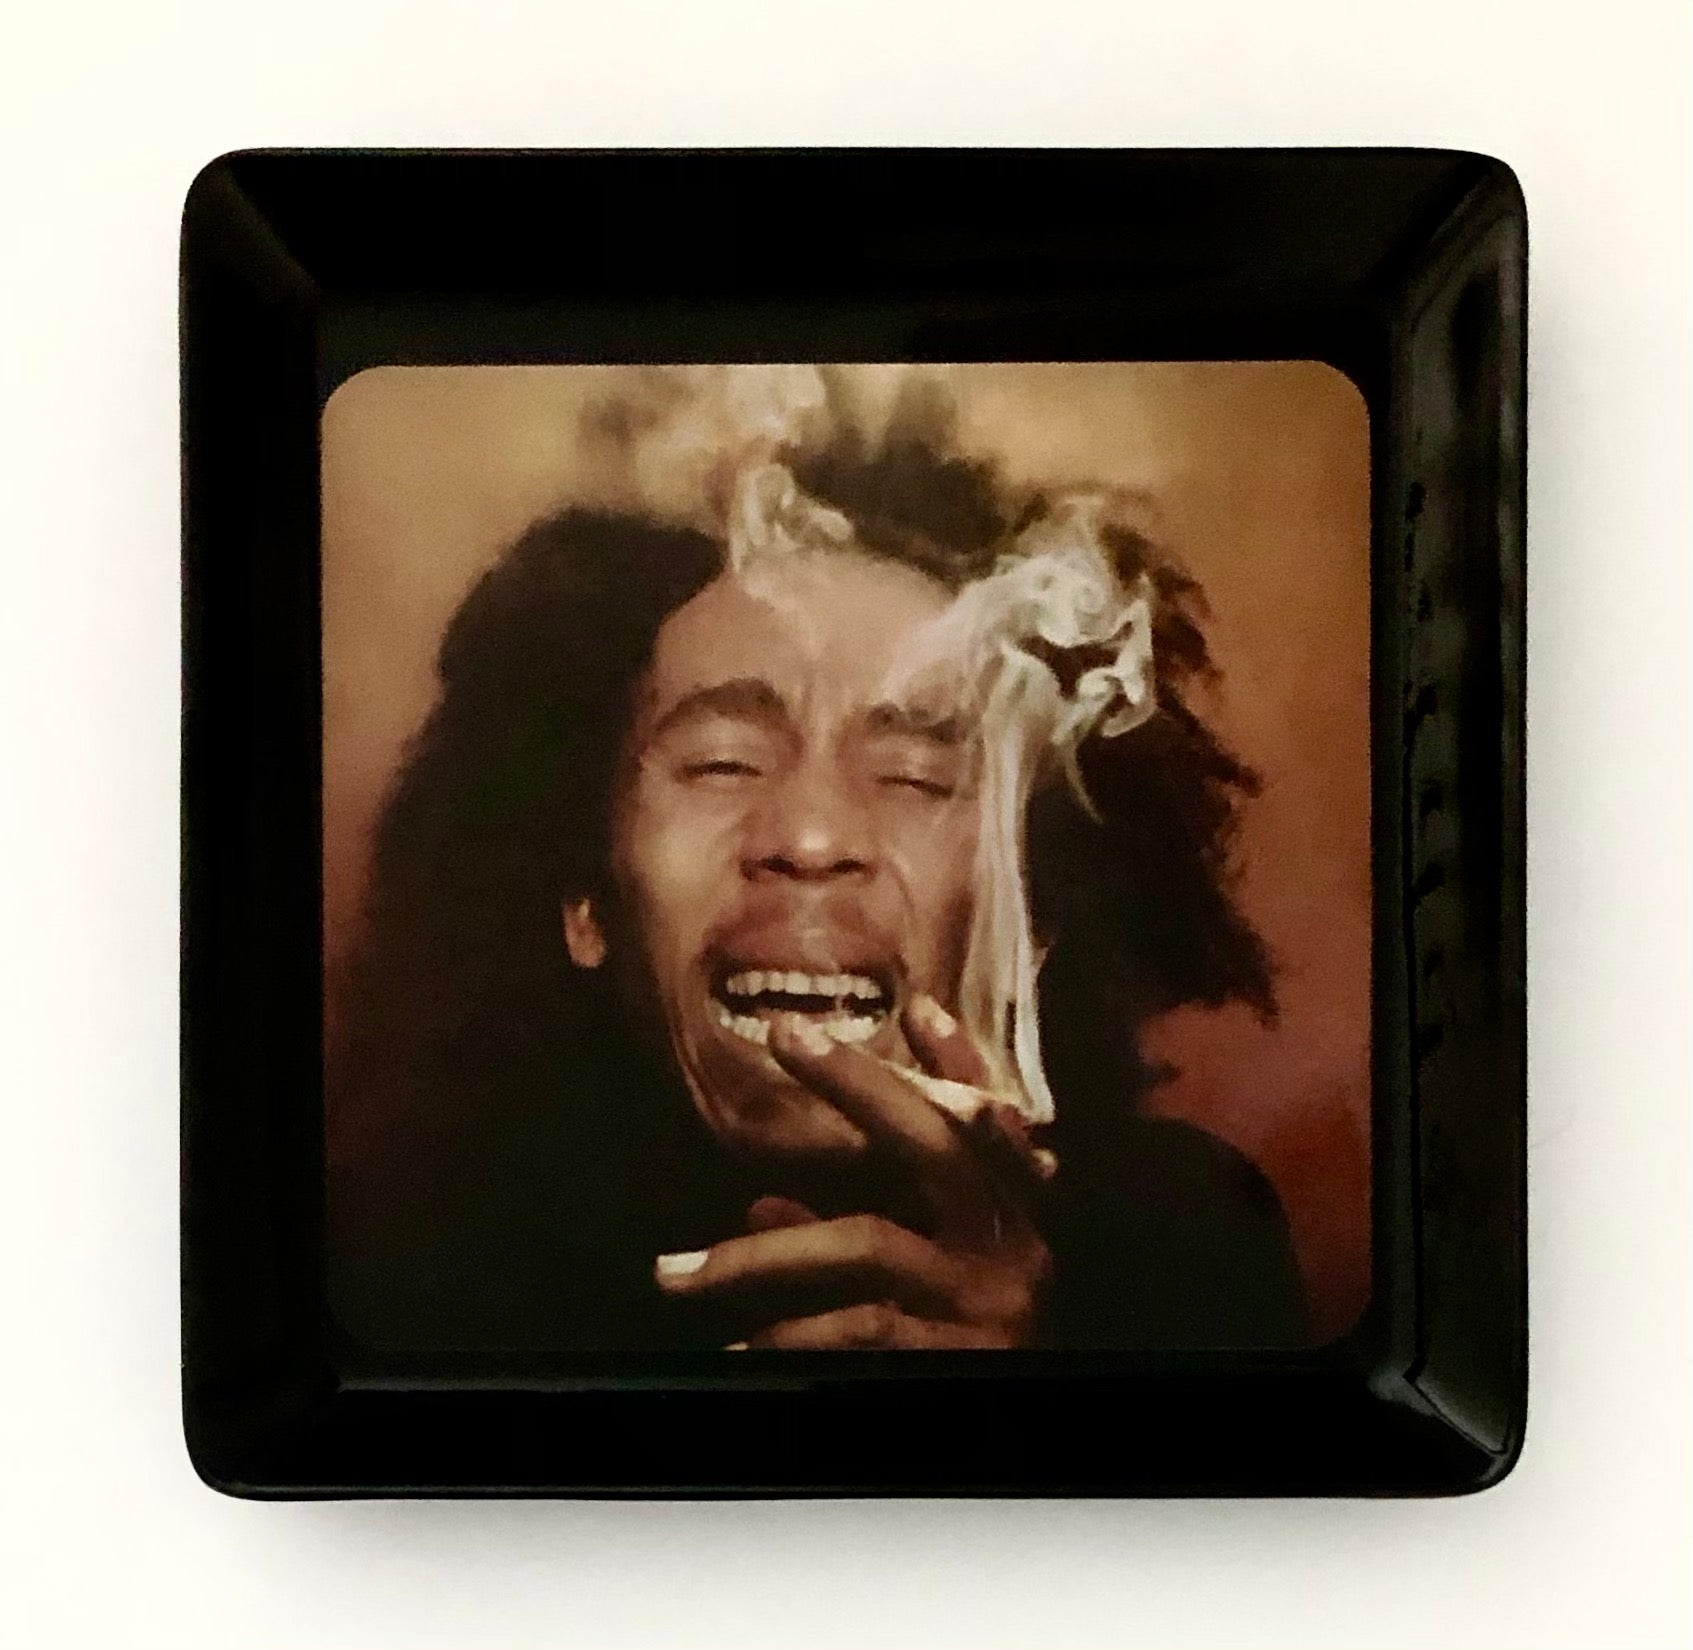 BOB MARLEY - smokin' another